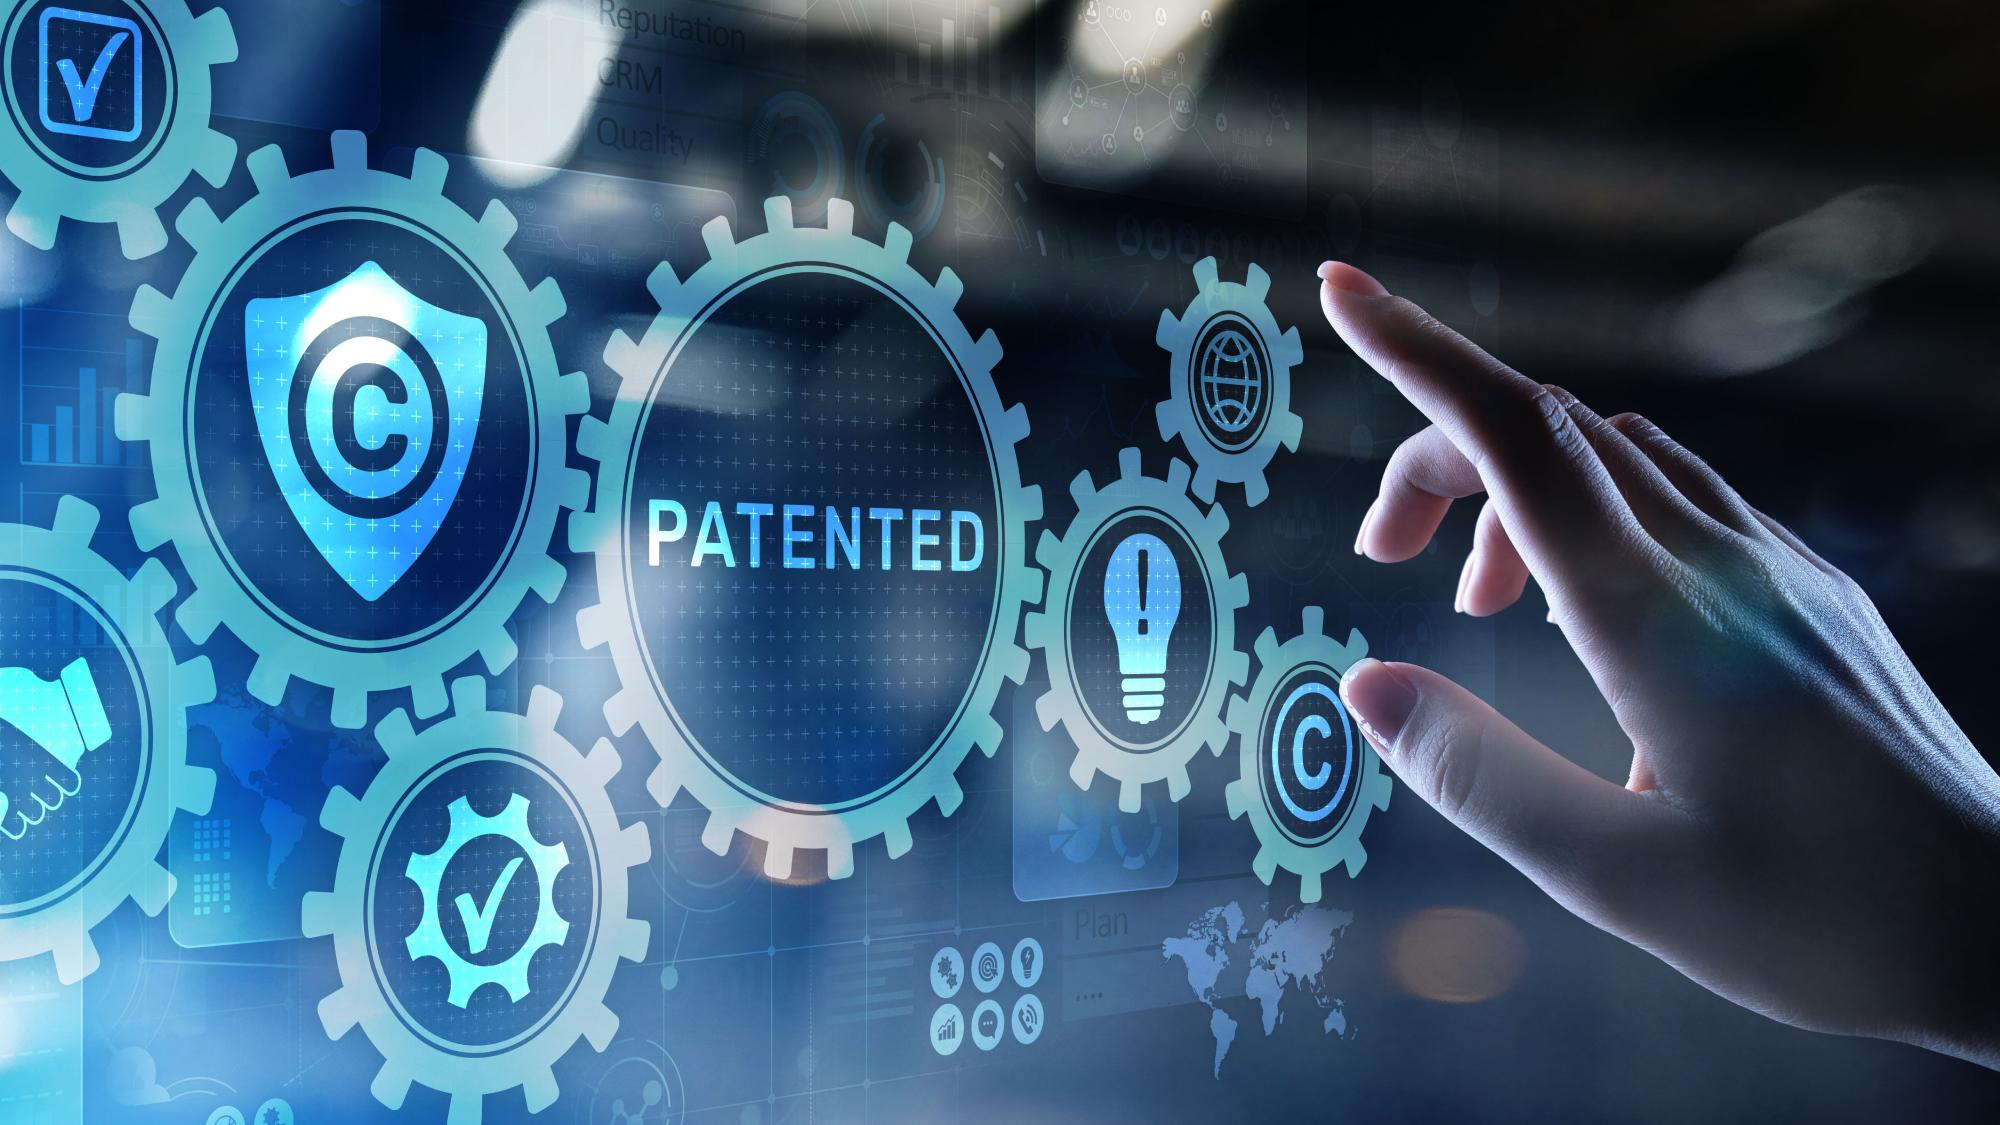 Teqmine has developed an automated AI-assisted tool that allows users to enter a text description of their idea and compares it to over 16 million full-text patents.